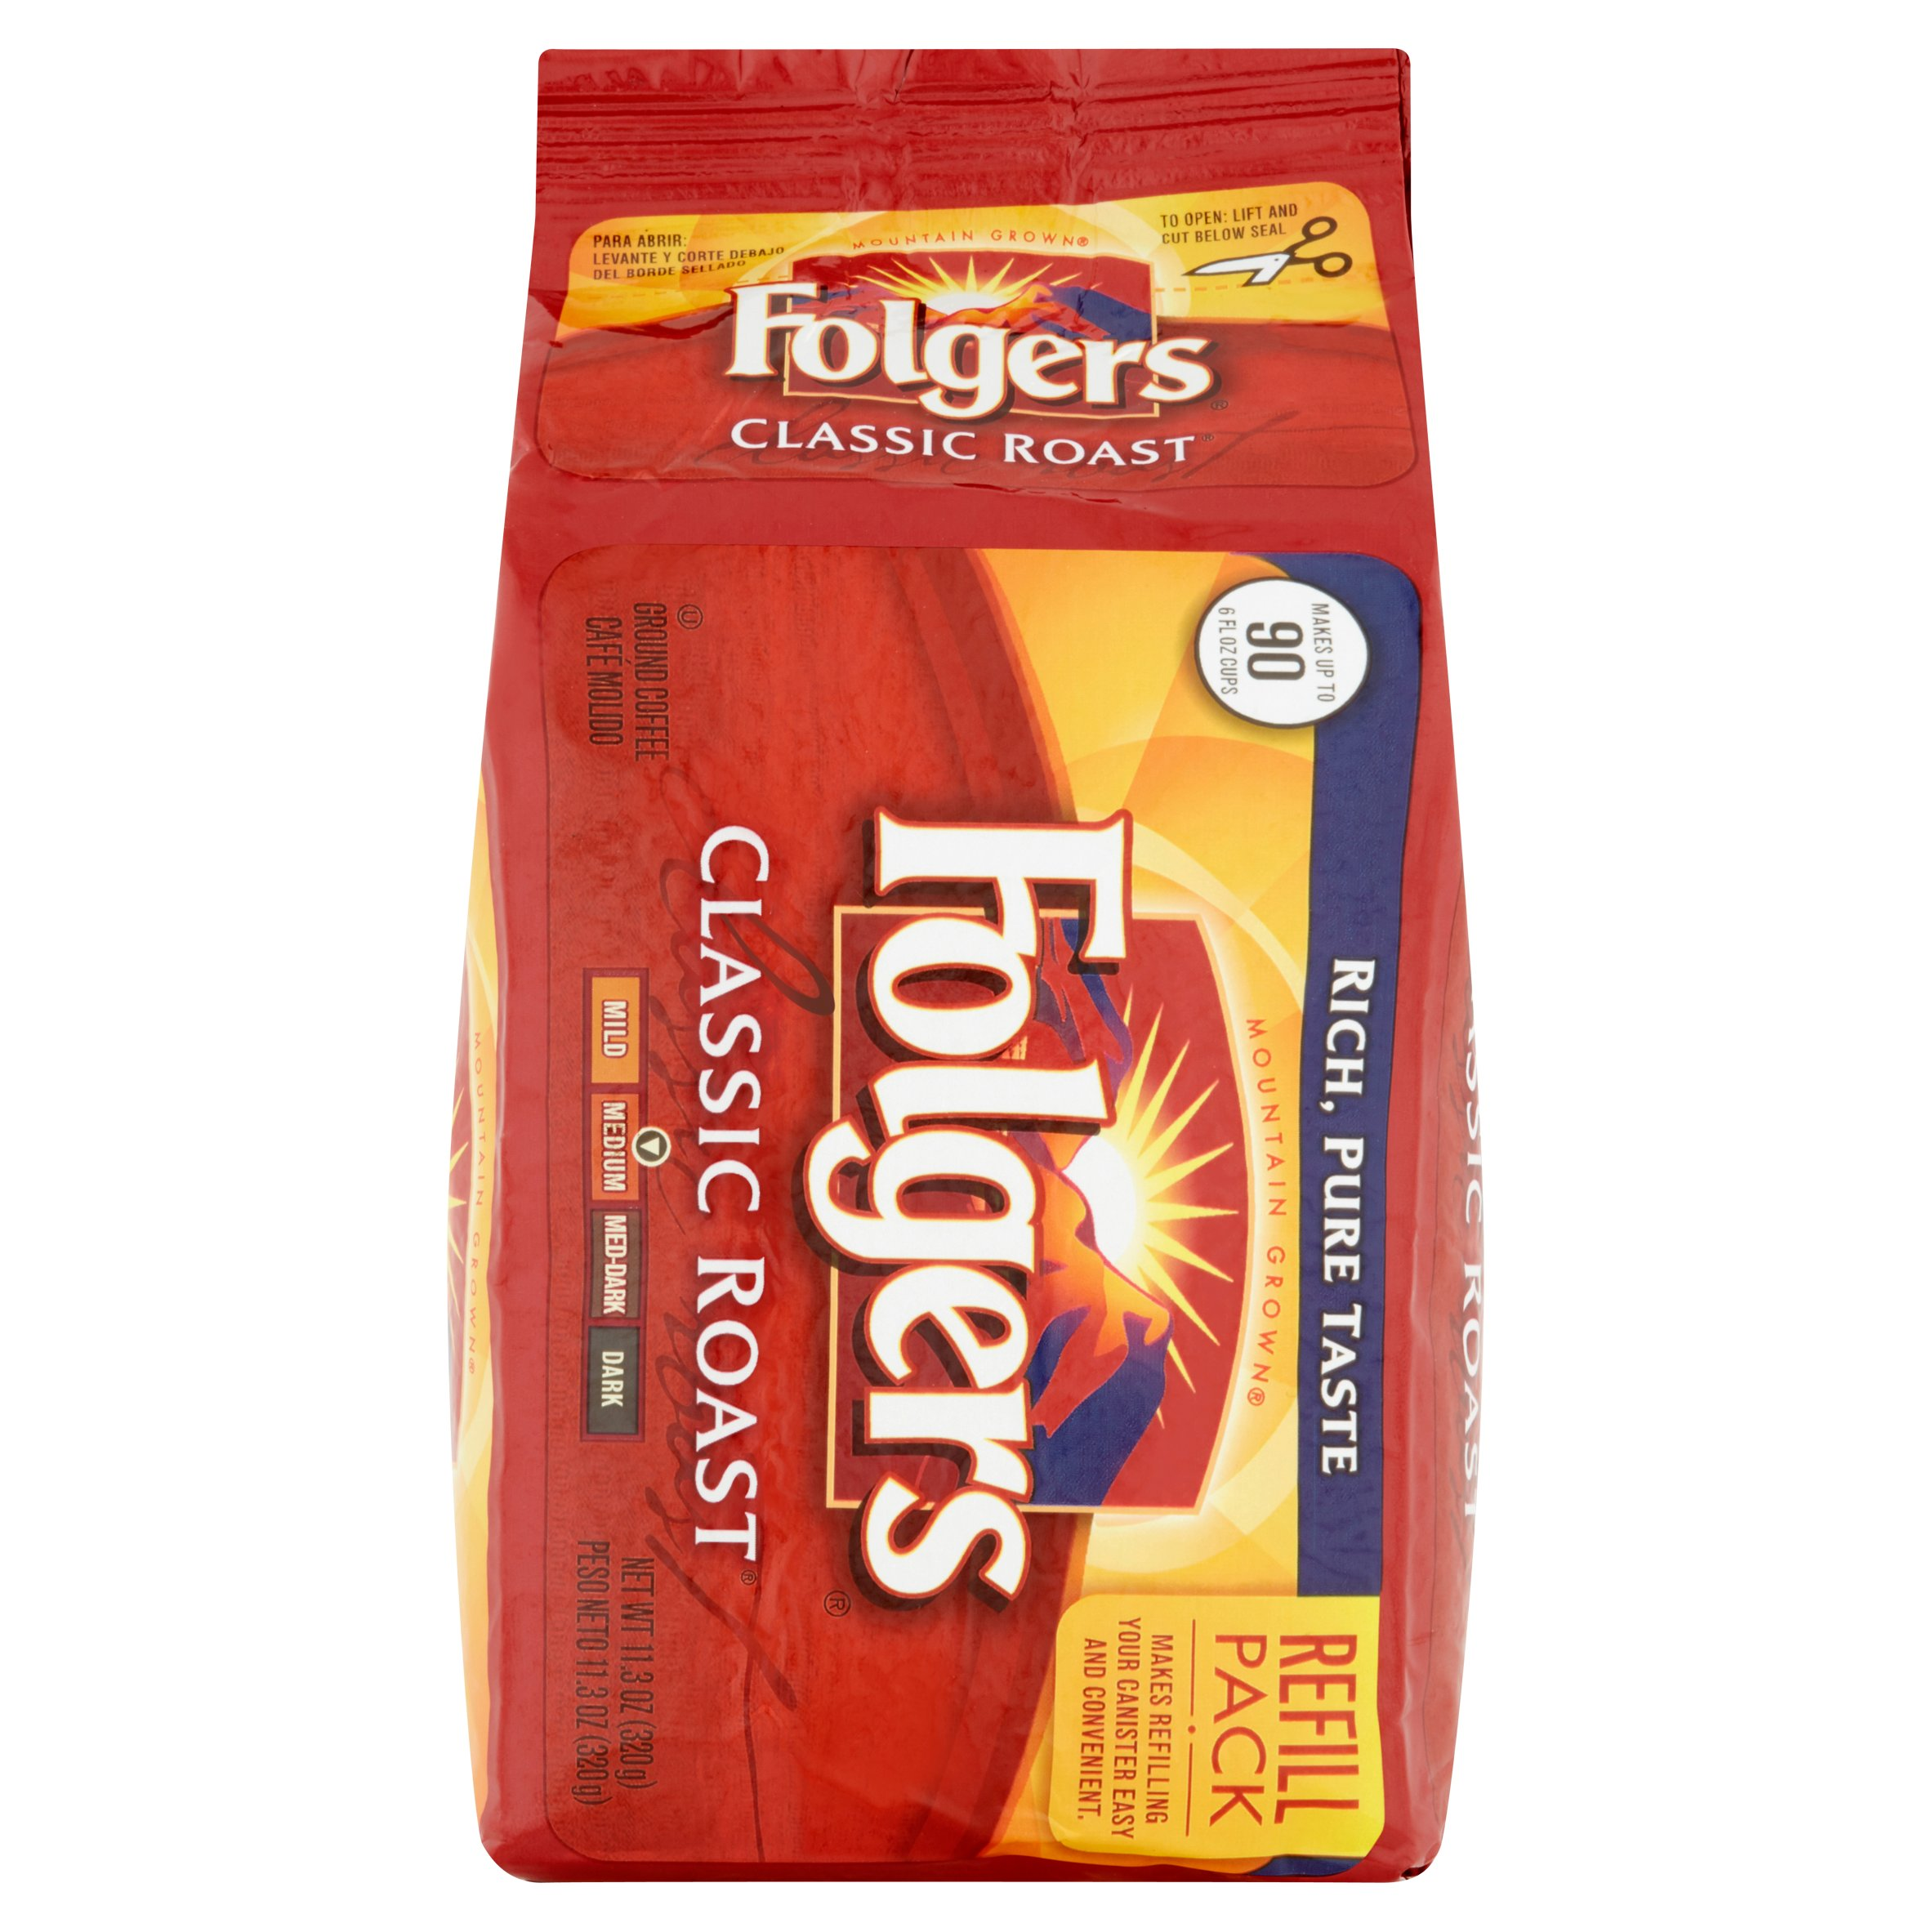 Folgers Classic Roast Ground Medium Coffee Refill Pack, 11.3 oz